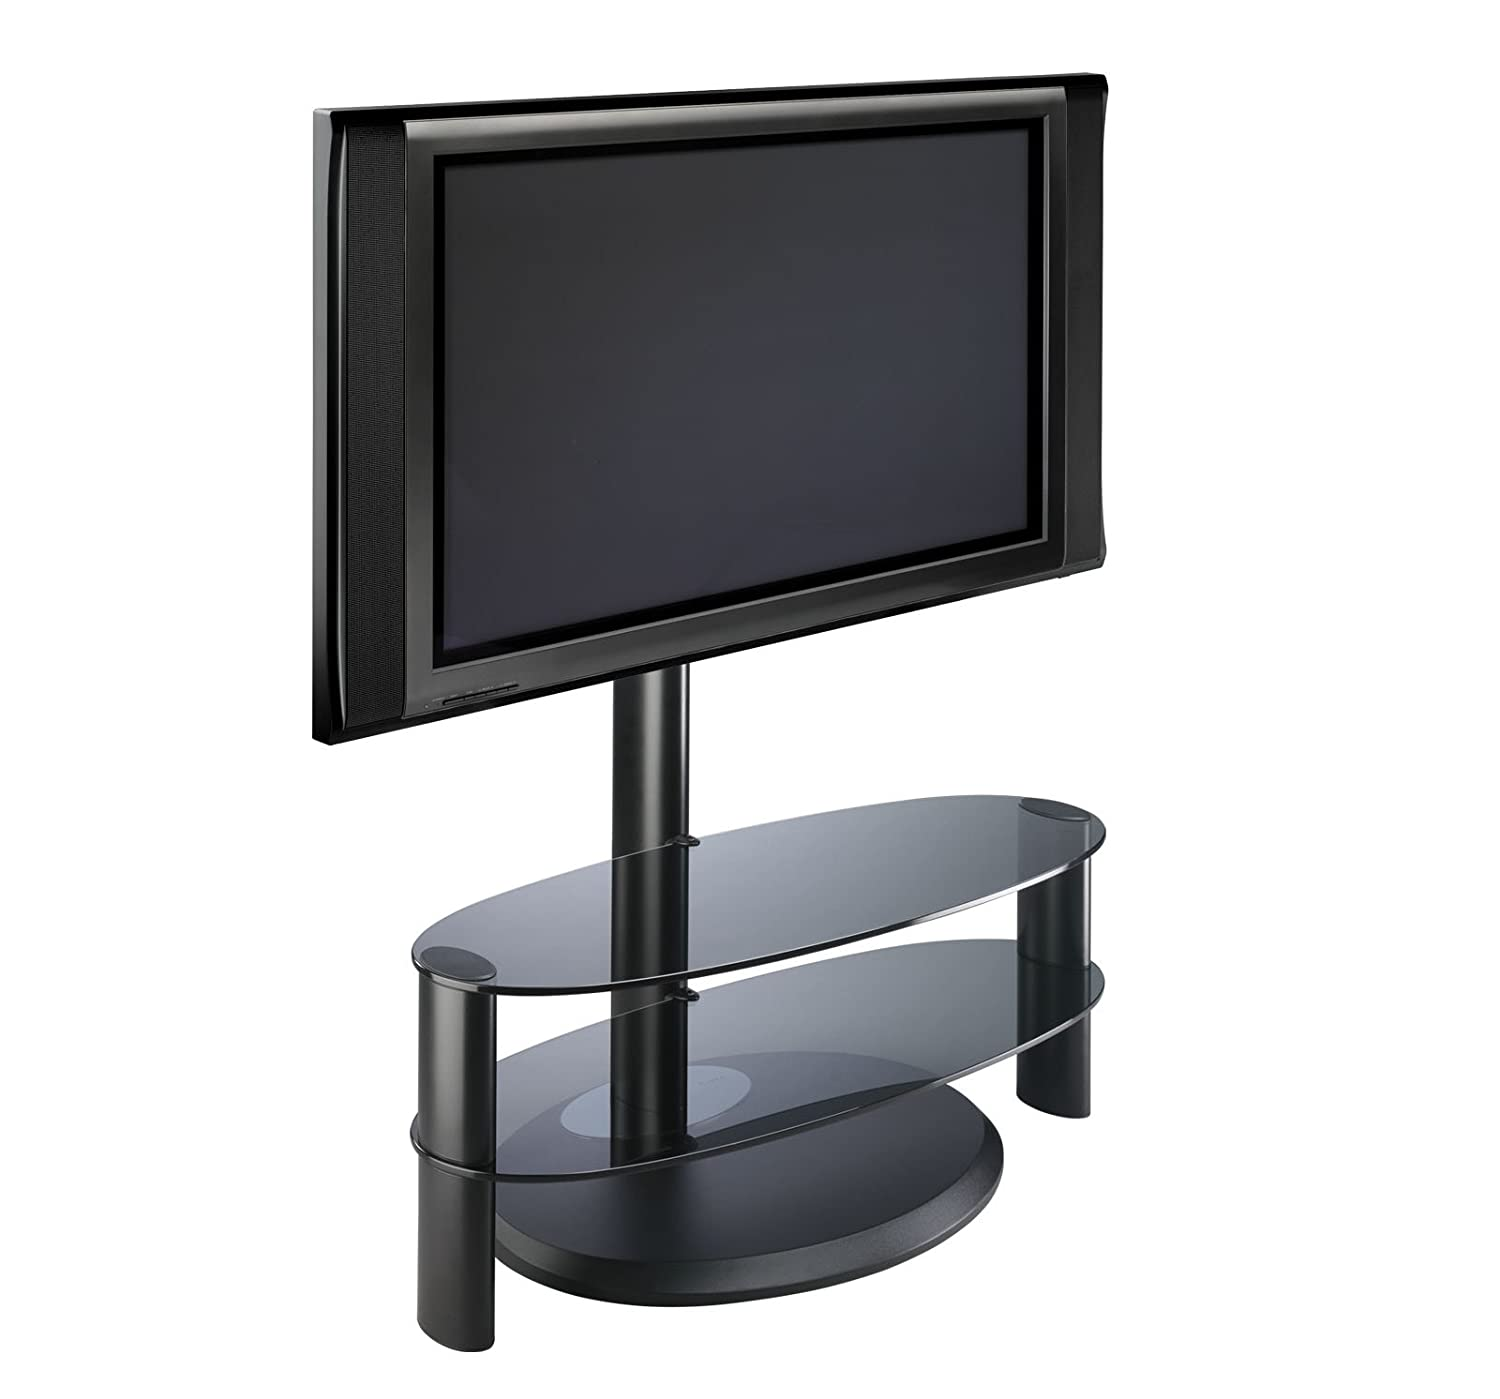 Meliconi Tv Meubel.Meliconi Flat Vision Star 200 Technical Washstand For Plasma Tv Lcd